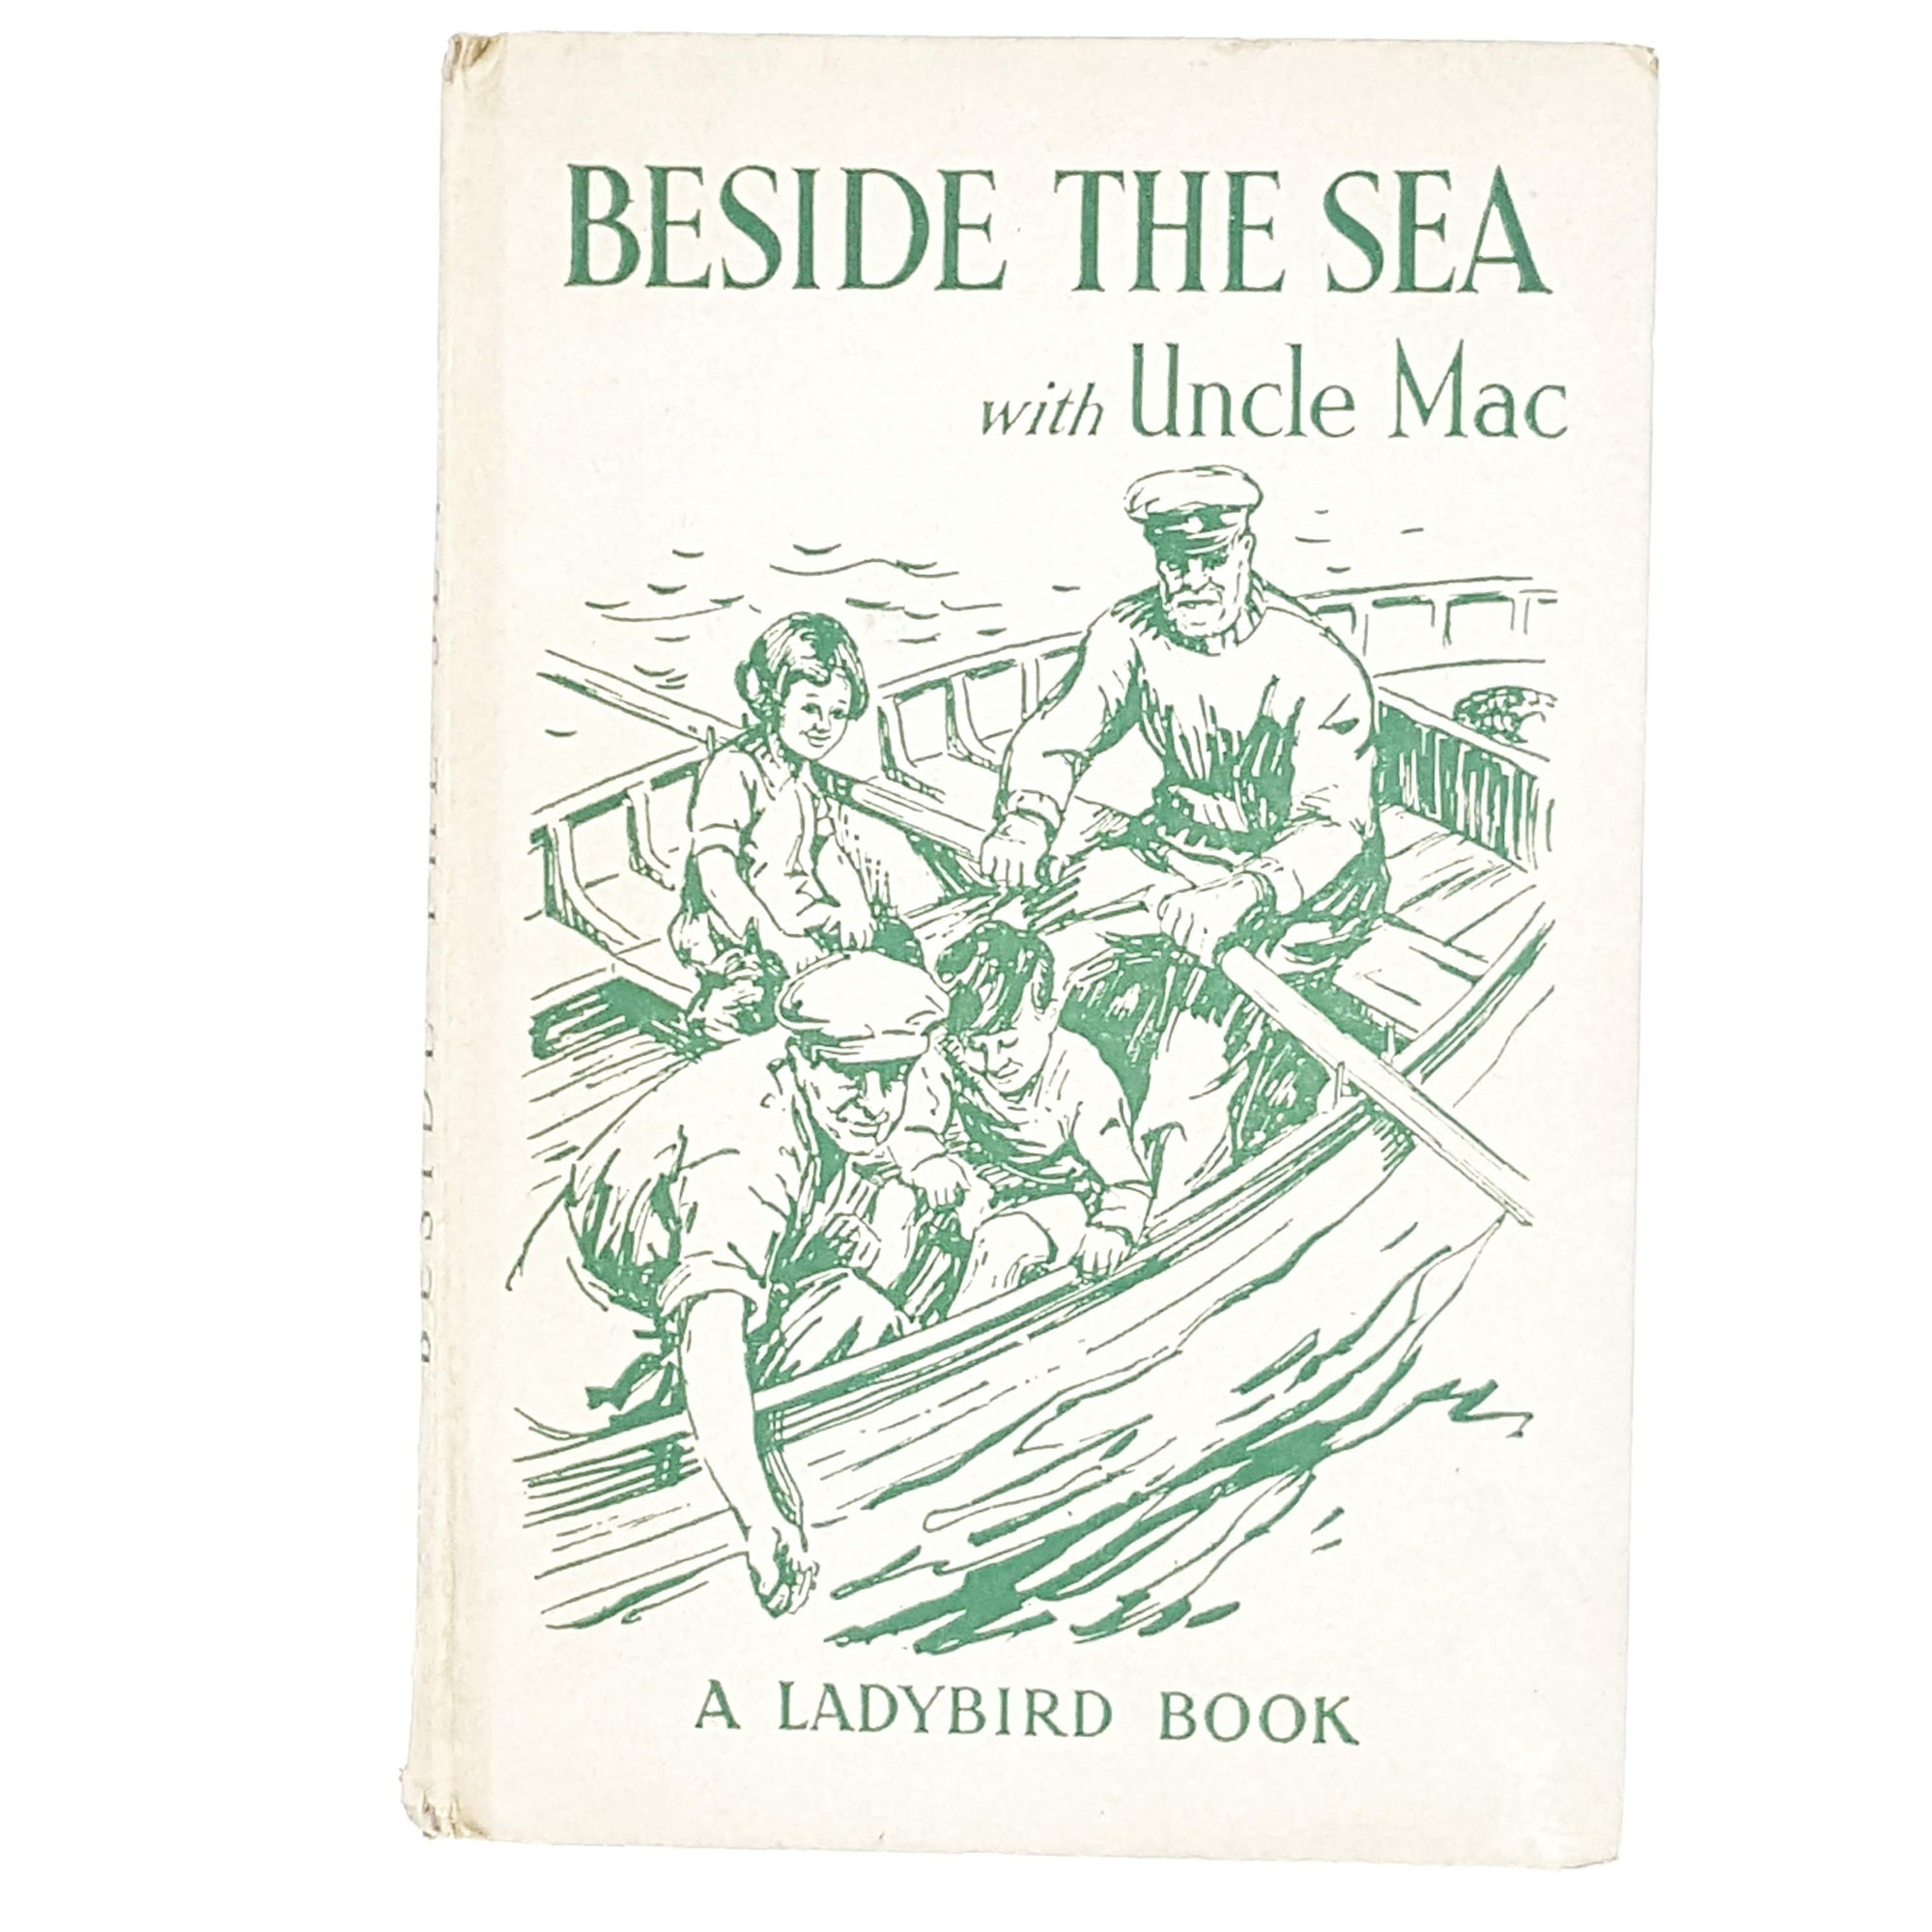 Beside the Sea with Uncle Mac by Derek McCulloch 1958